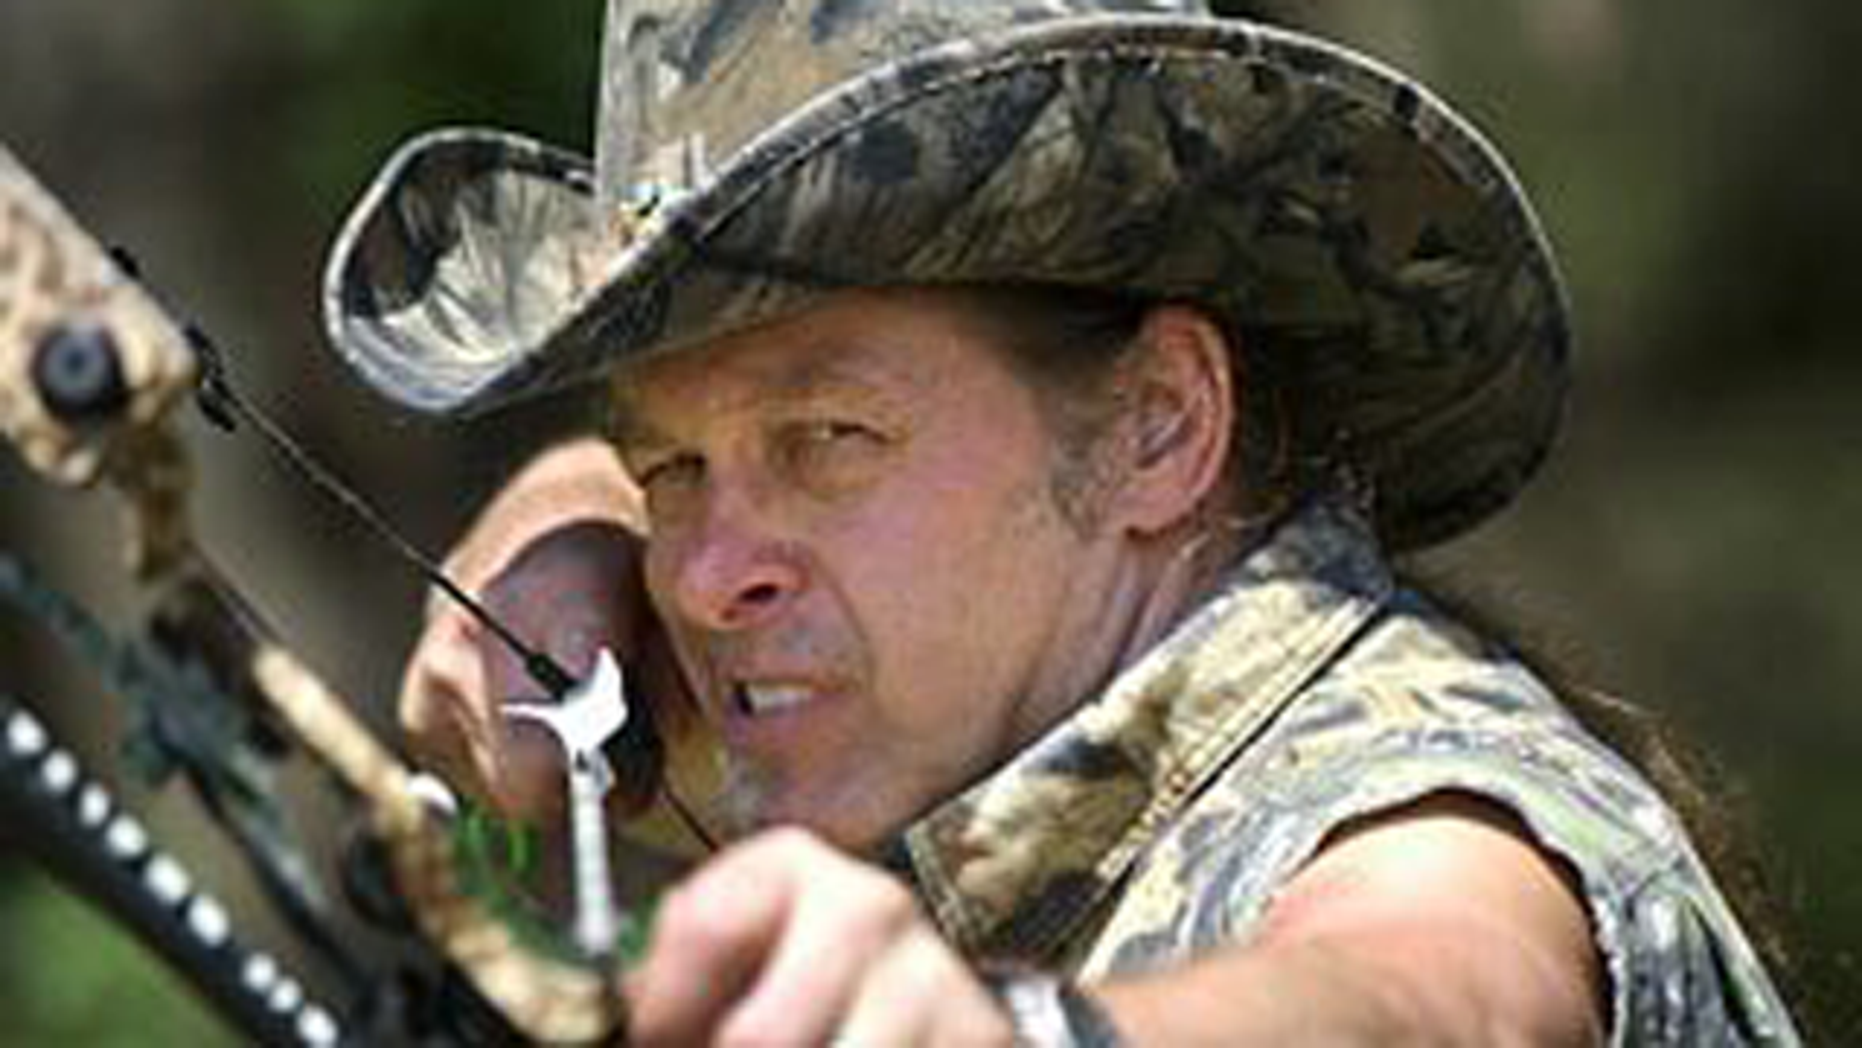 Ted Nugent Fined for Baiting Deer He Shot on TV Show  5e67a8d7ecd